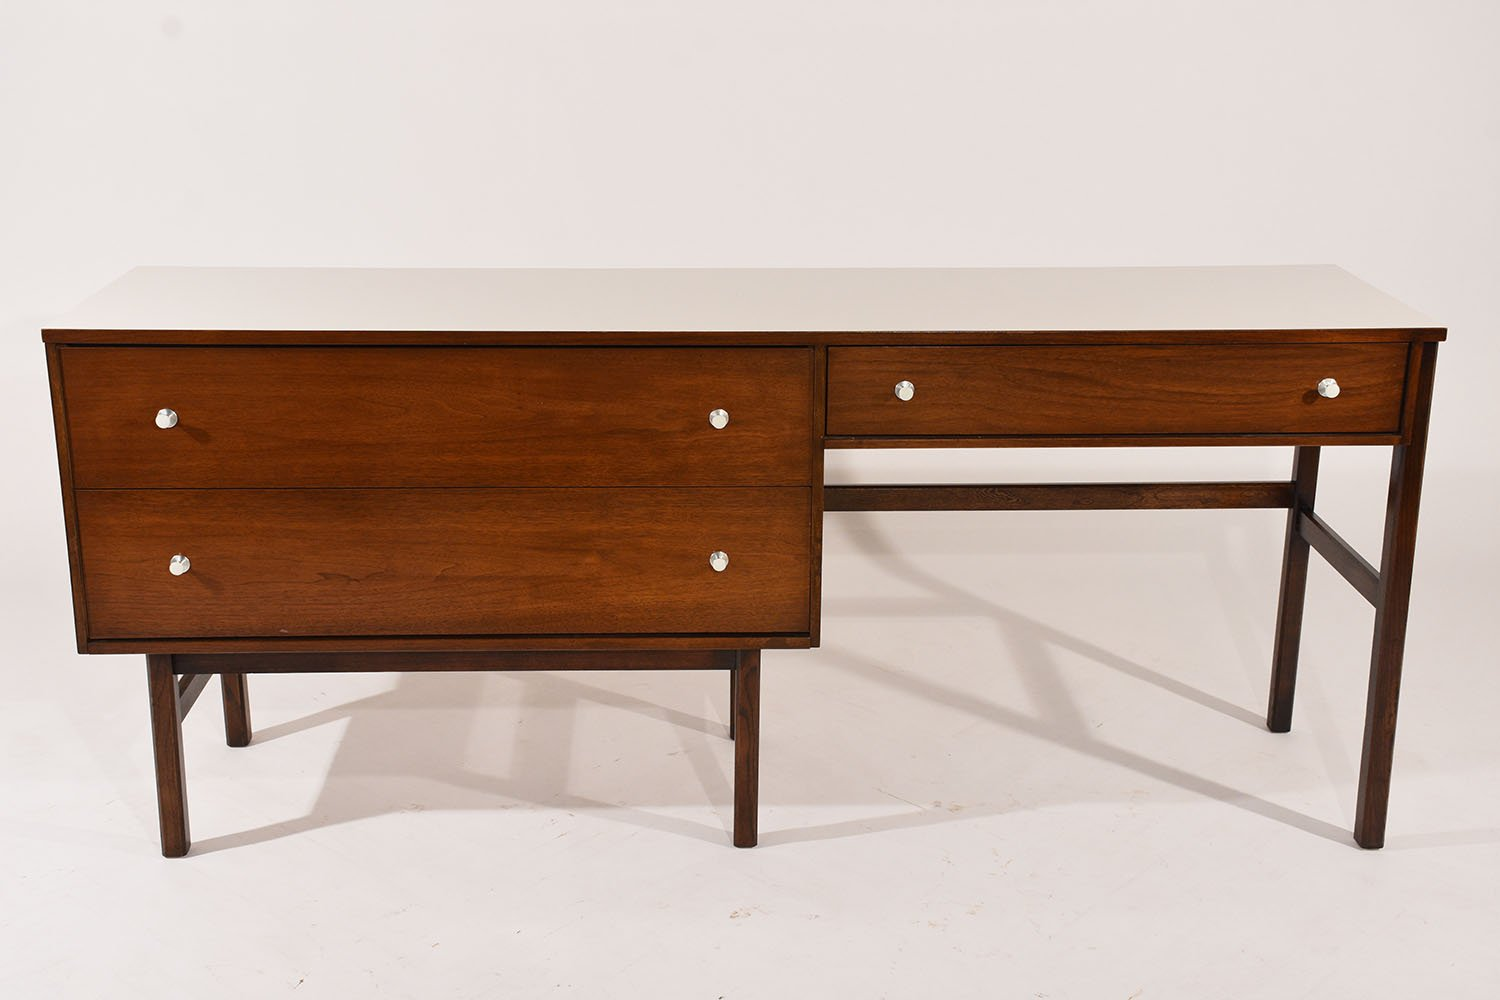 Mid Century Desk From Basset Furniture, 1960s